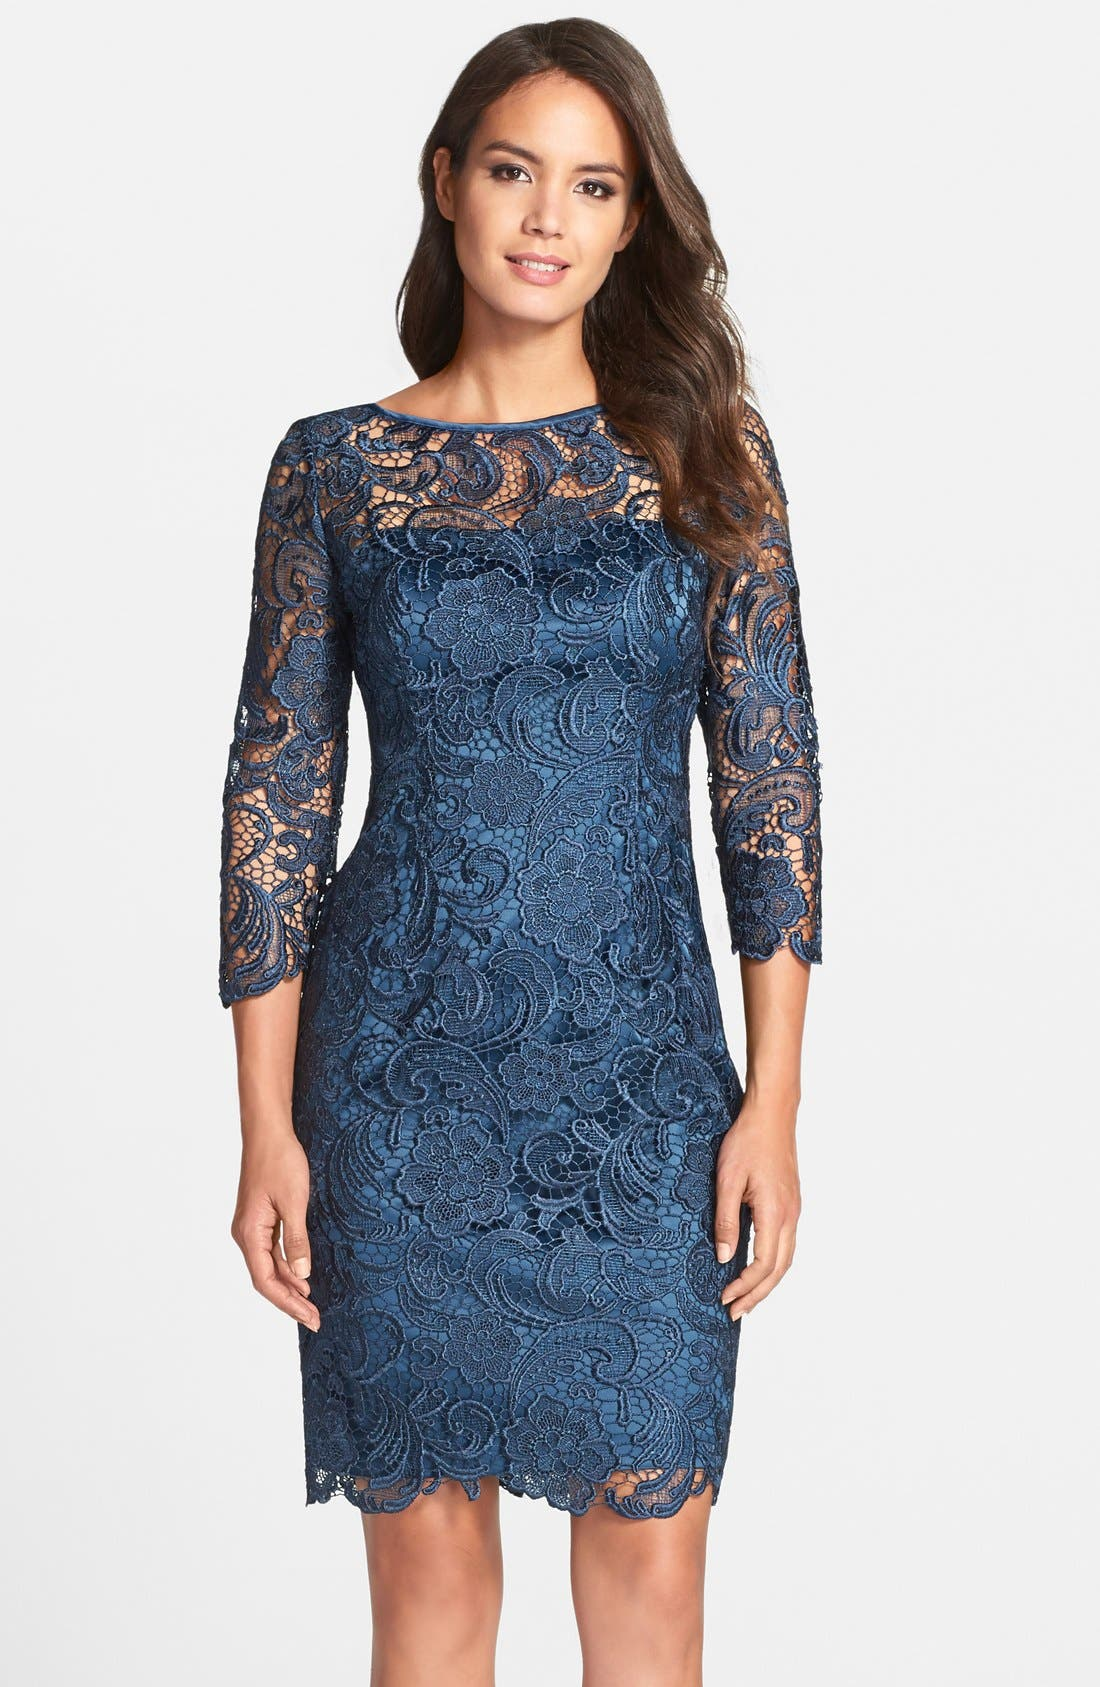 Alternate Image 1 Selected - Adrianna Papell Illusion Yoke Guipure Lace Sheath Dress